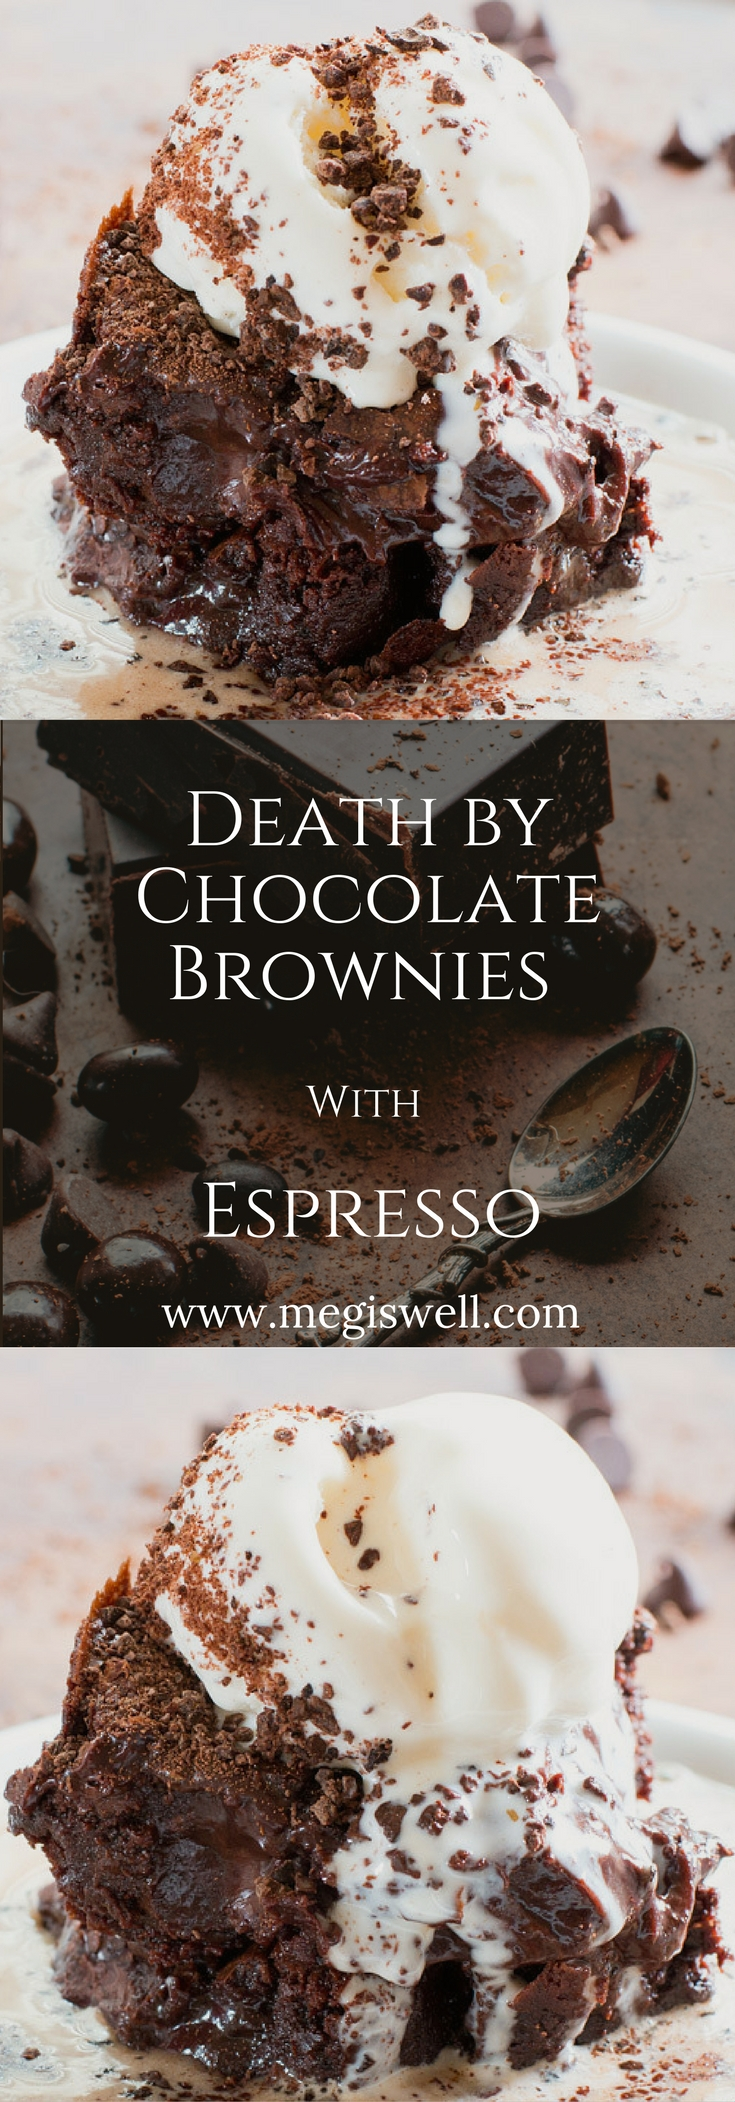 There is so much chocolate in these Death by Chocolate Brownies with Espresso you could die. Only to be revived again by espresso. Chocolate covered espresso beans are ground up into a fine powder, used in both a brownie and fudge batter, and sprinkled on top of the ice cream. Then right before serving, hot freshly brewed espresso is poured on top of everything. | www.megiswell.com